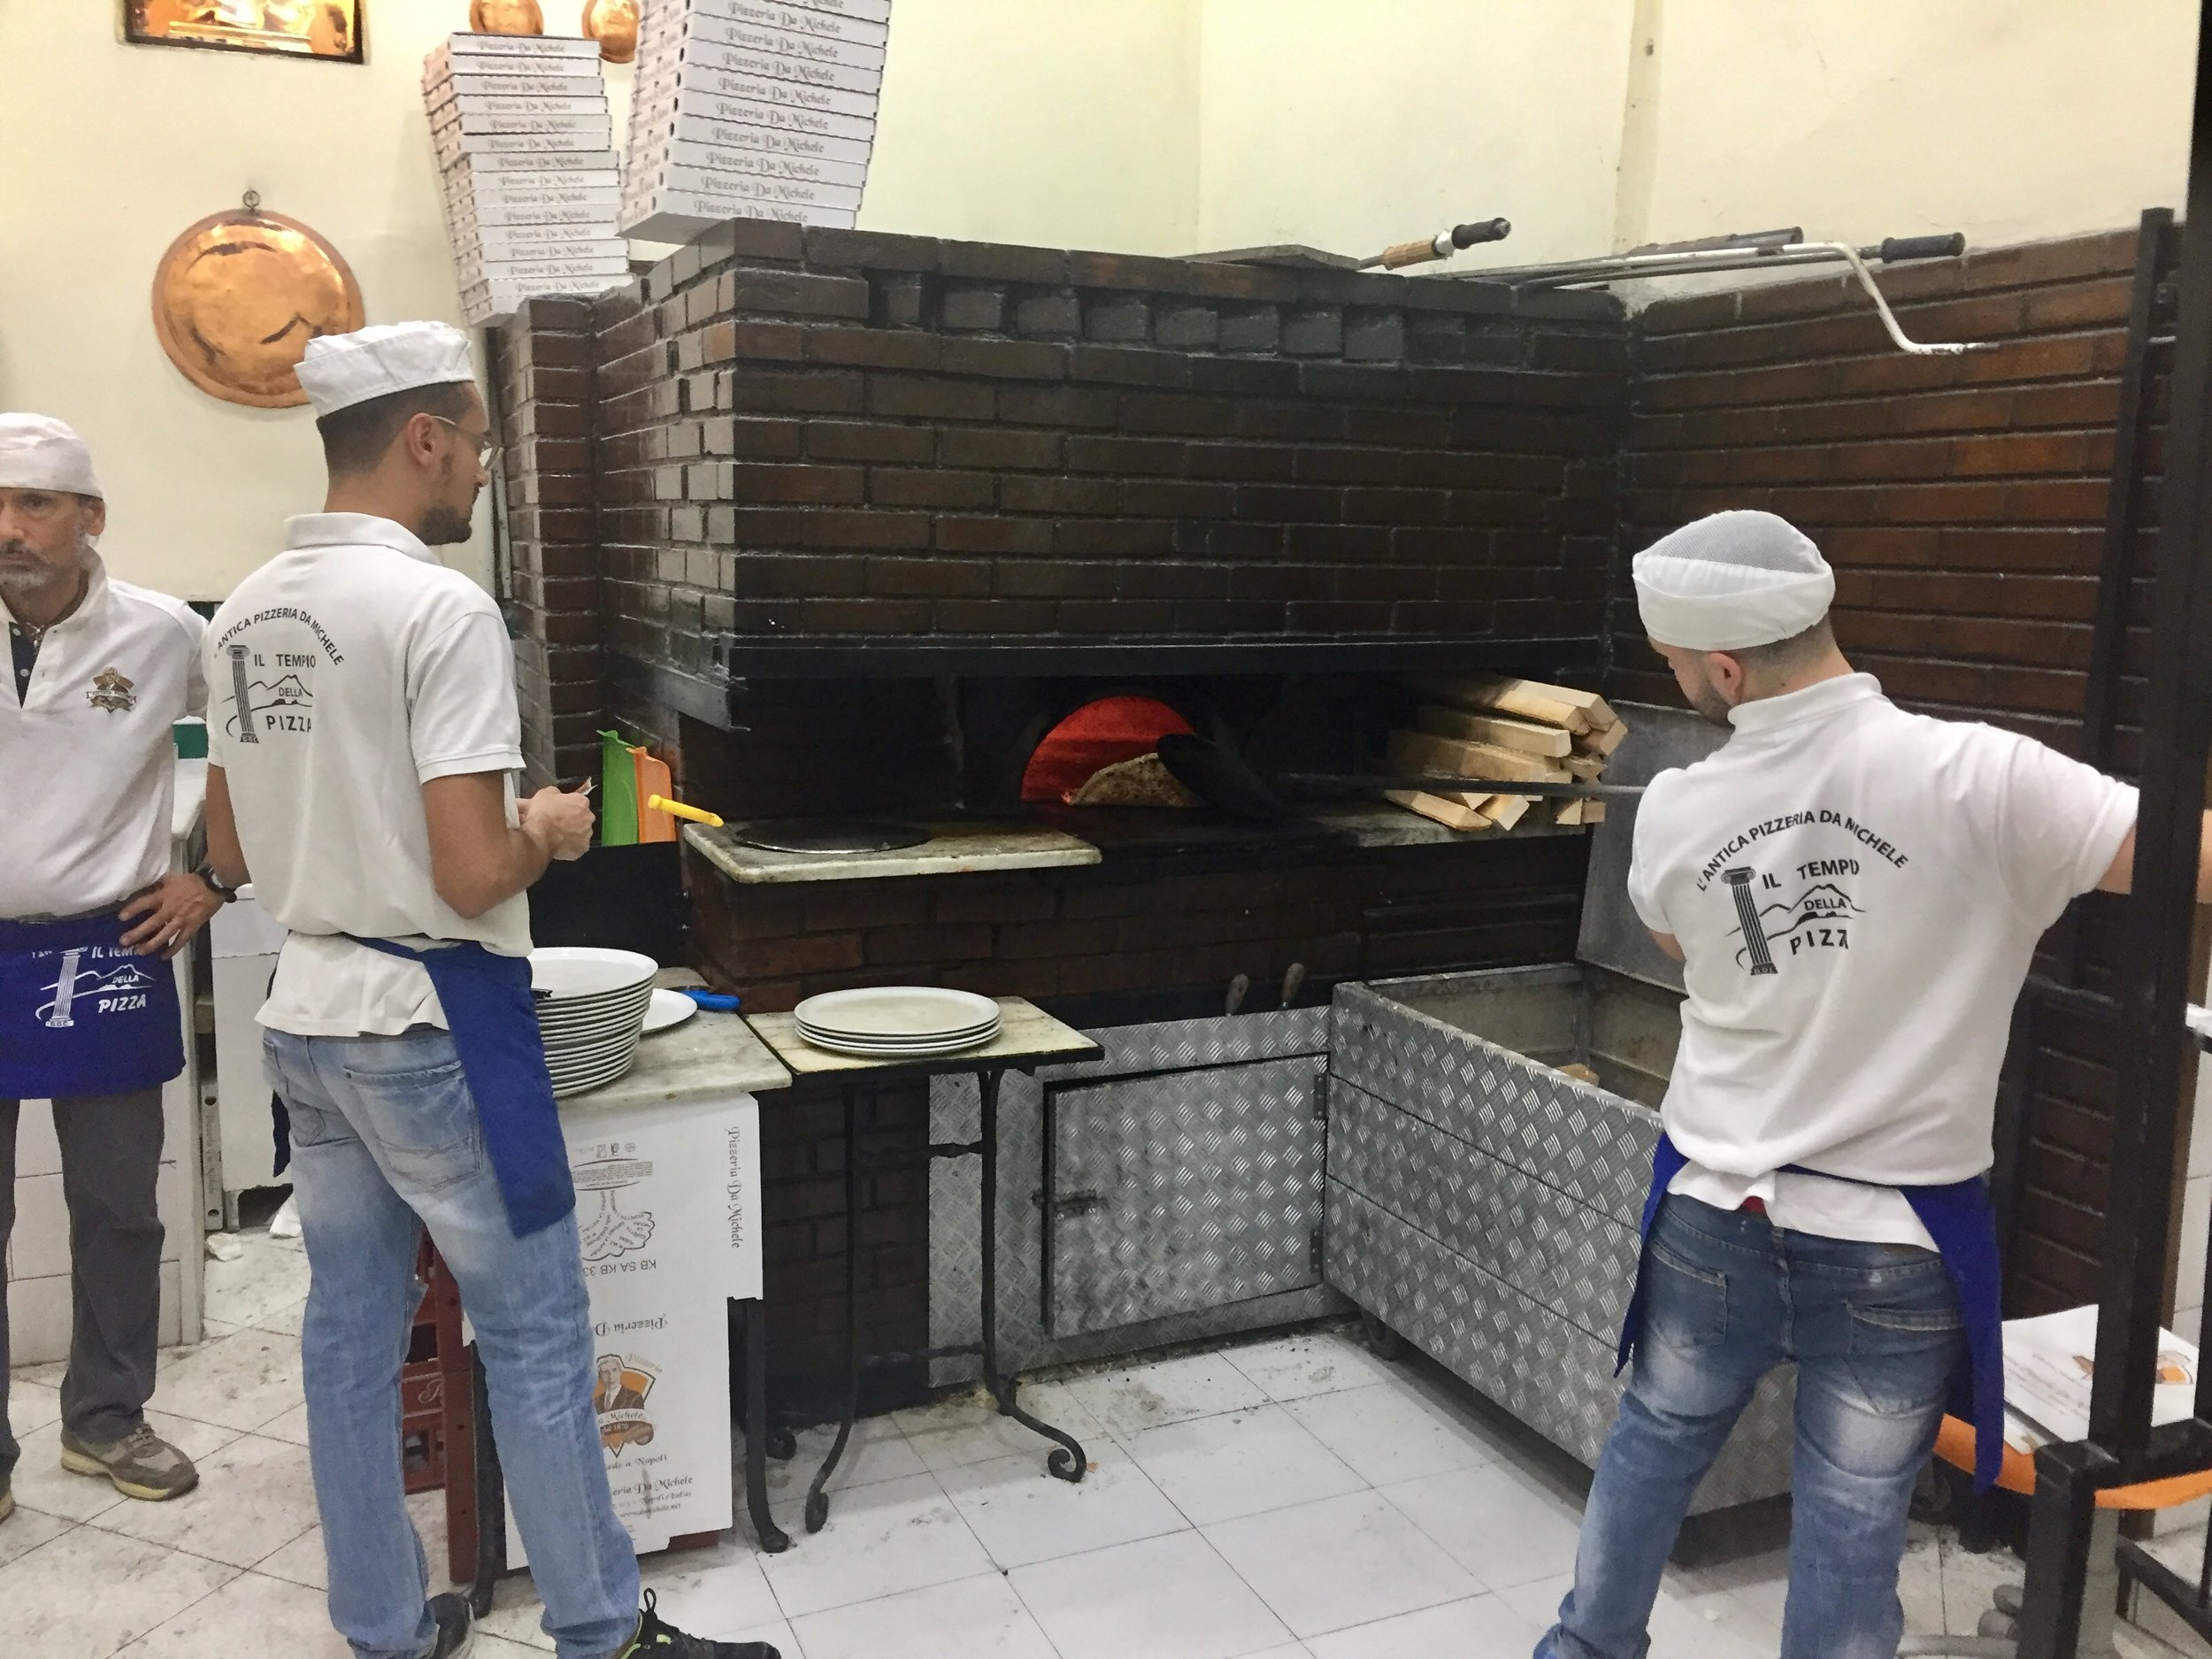 The wood burning oven and hardworking pizzaioli at the legendary L'Antica Pizzeria Da Michele